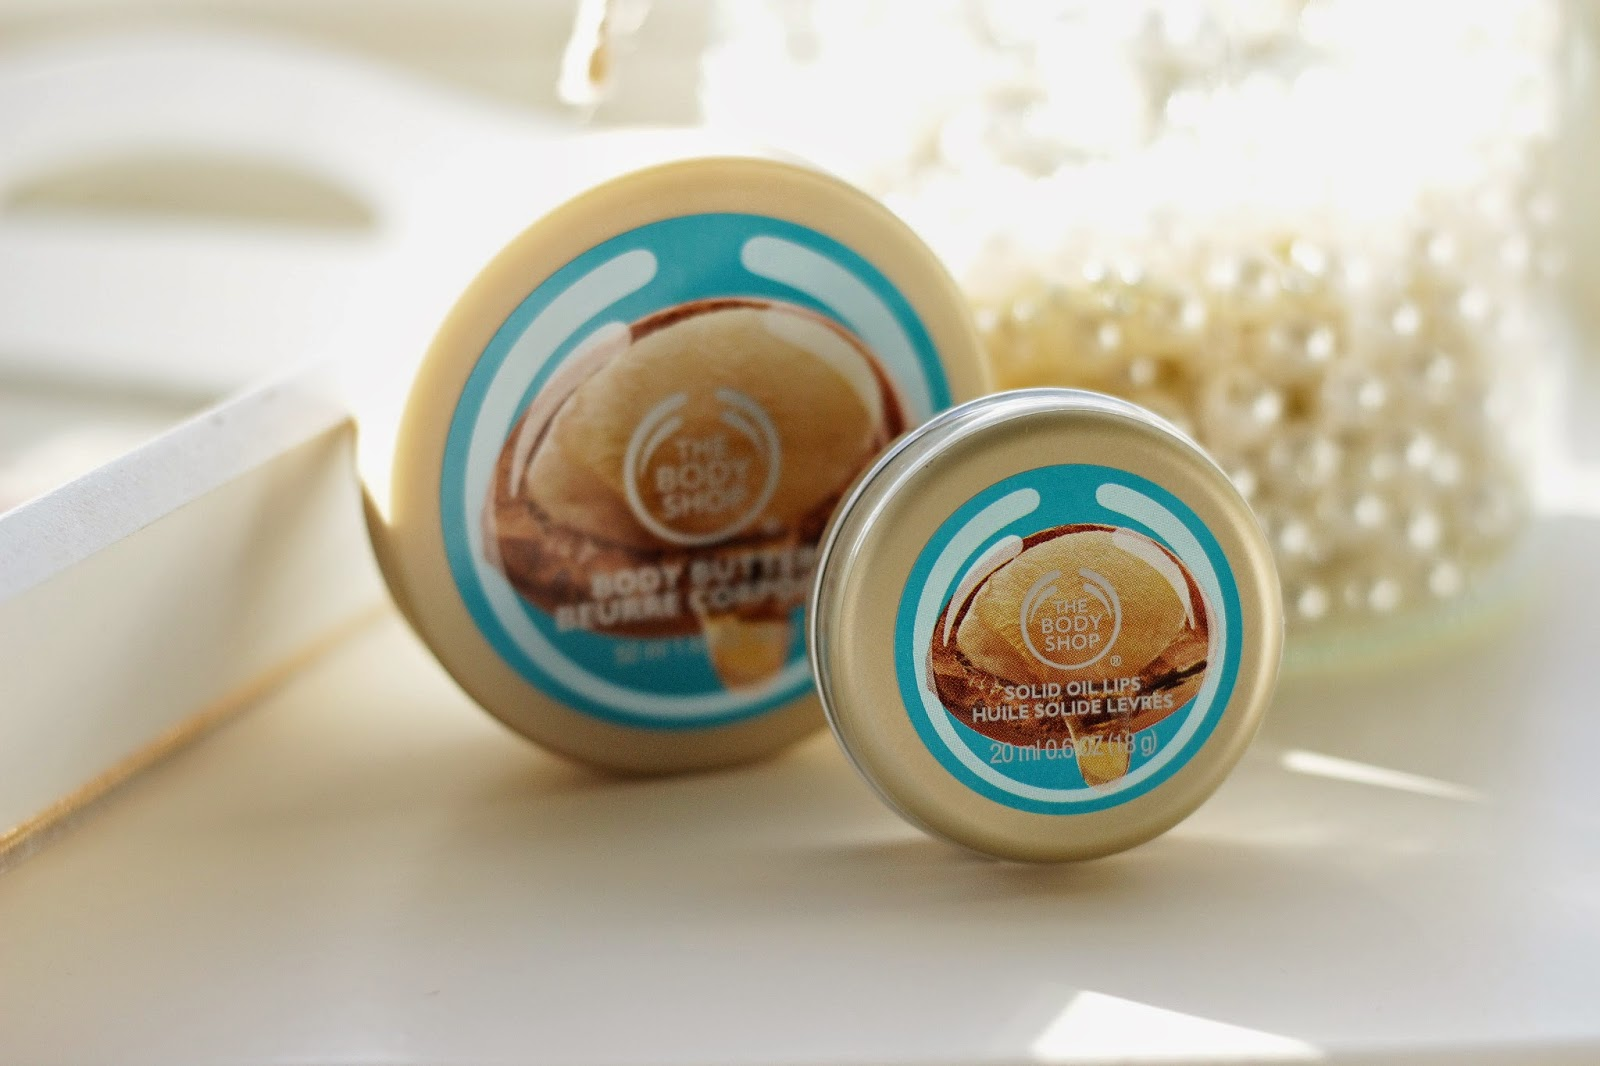 the body shop shoplog, the body shop wild argan oil body butter  solid oil lips